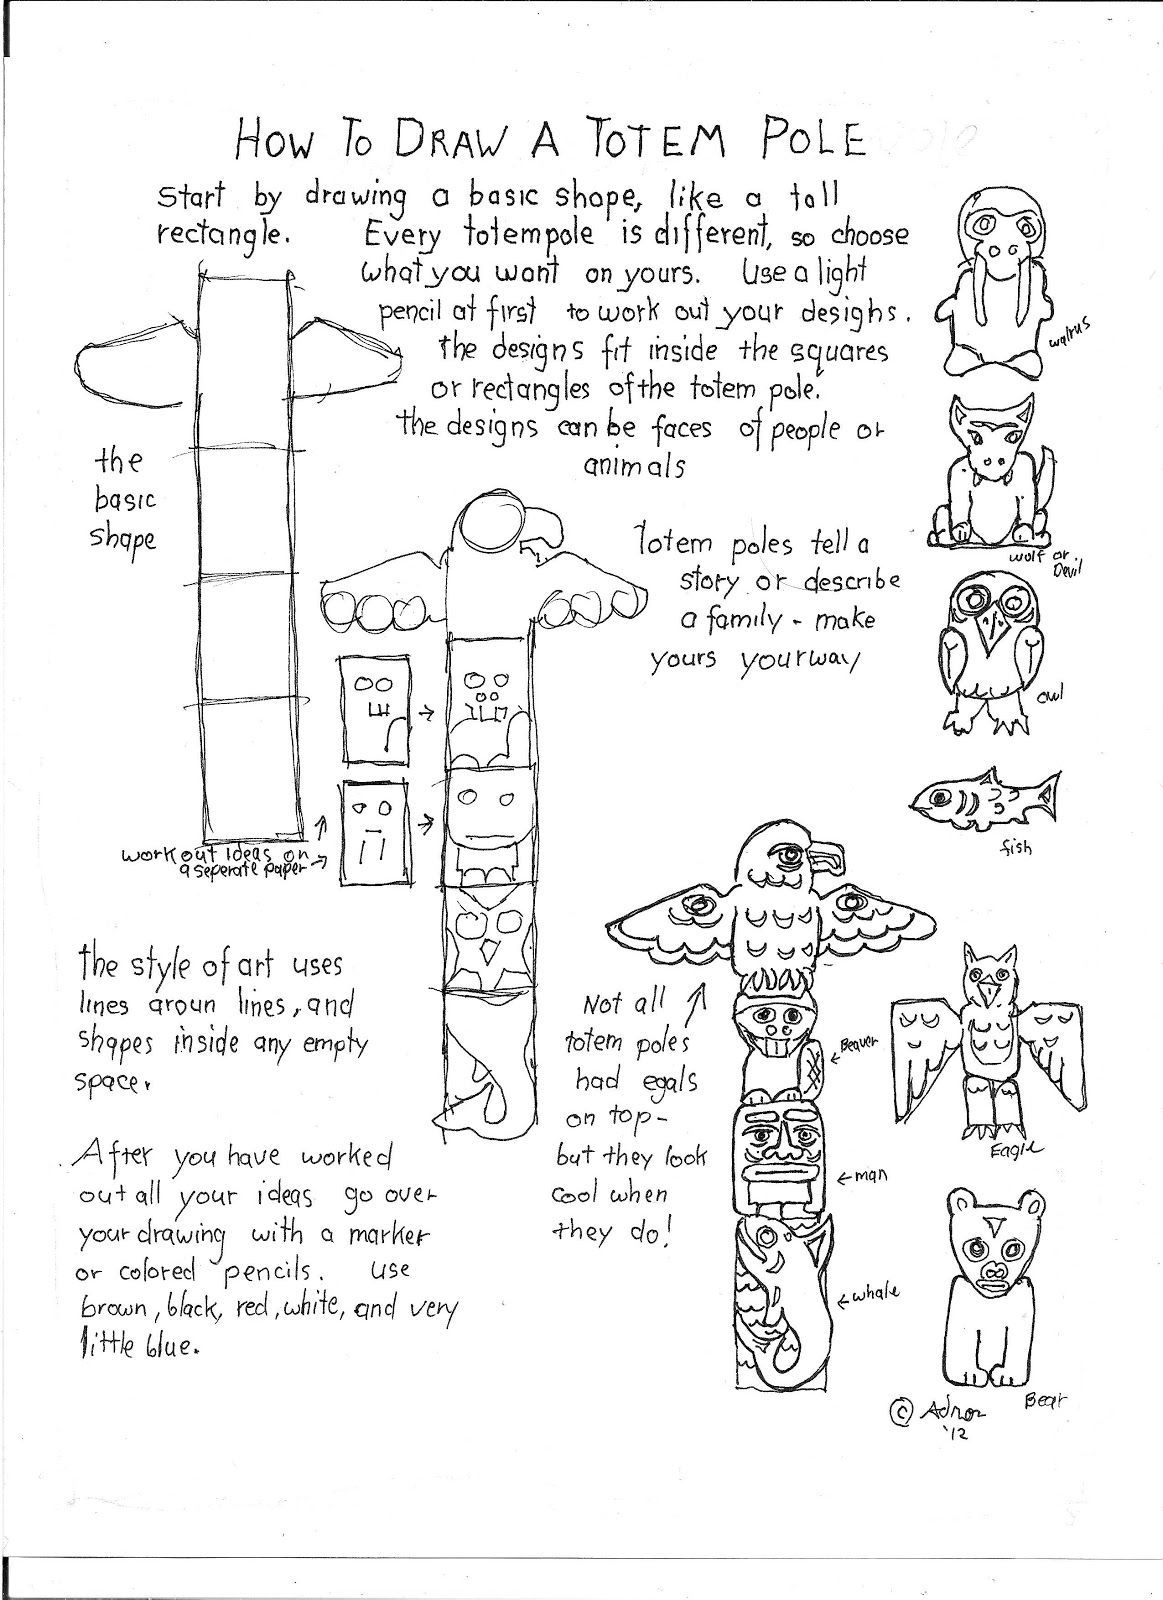 How To Draw A Totem Pole Worksheet